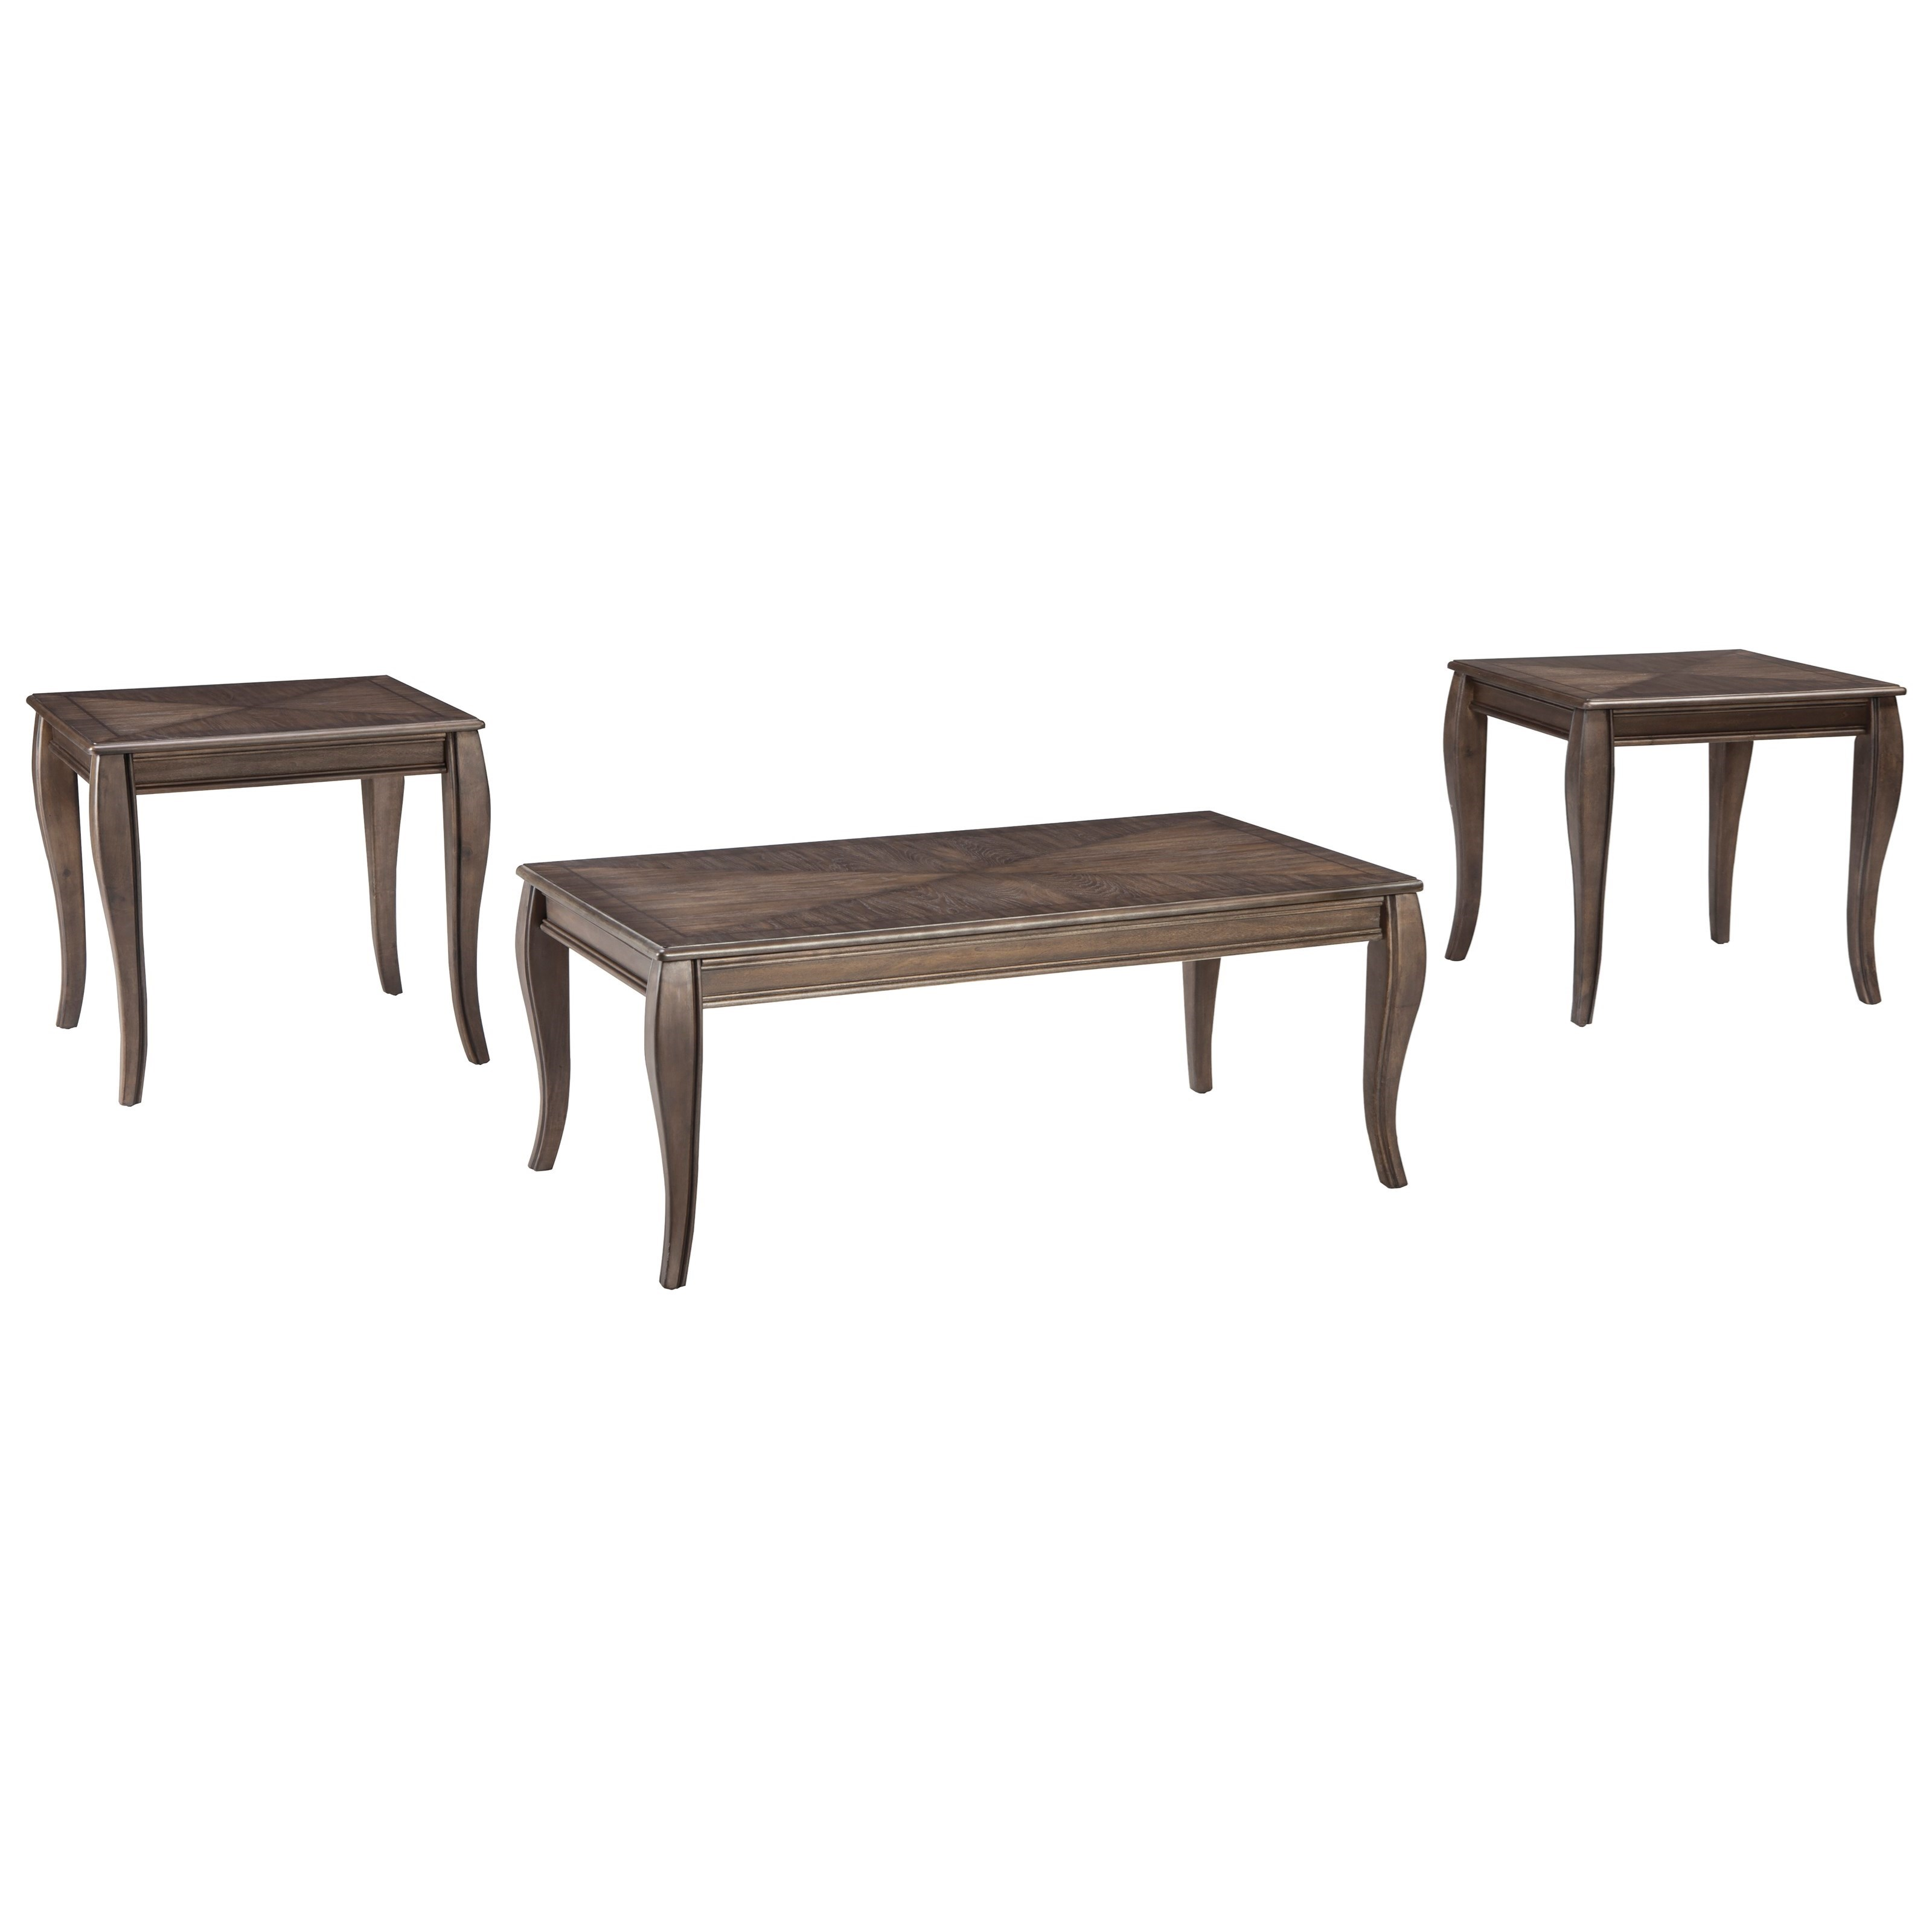 Signature Design by Ashley Vintelli Occasional Table Set - Item Number: T316-13